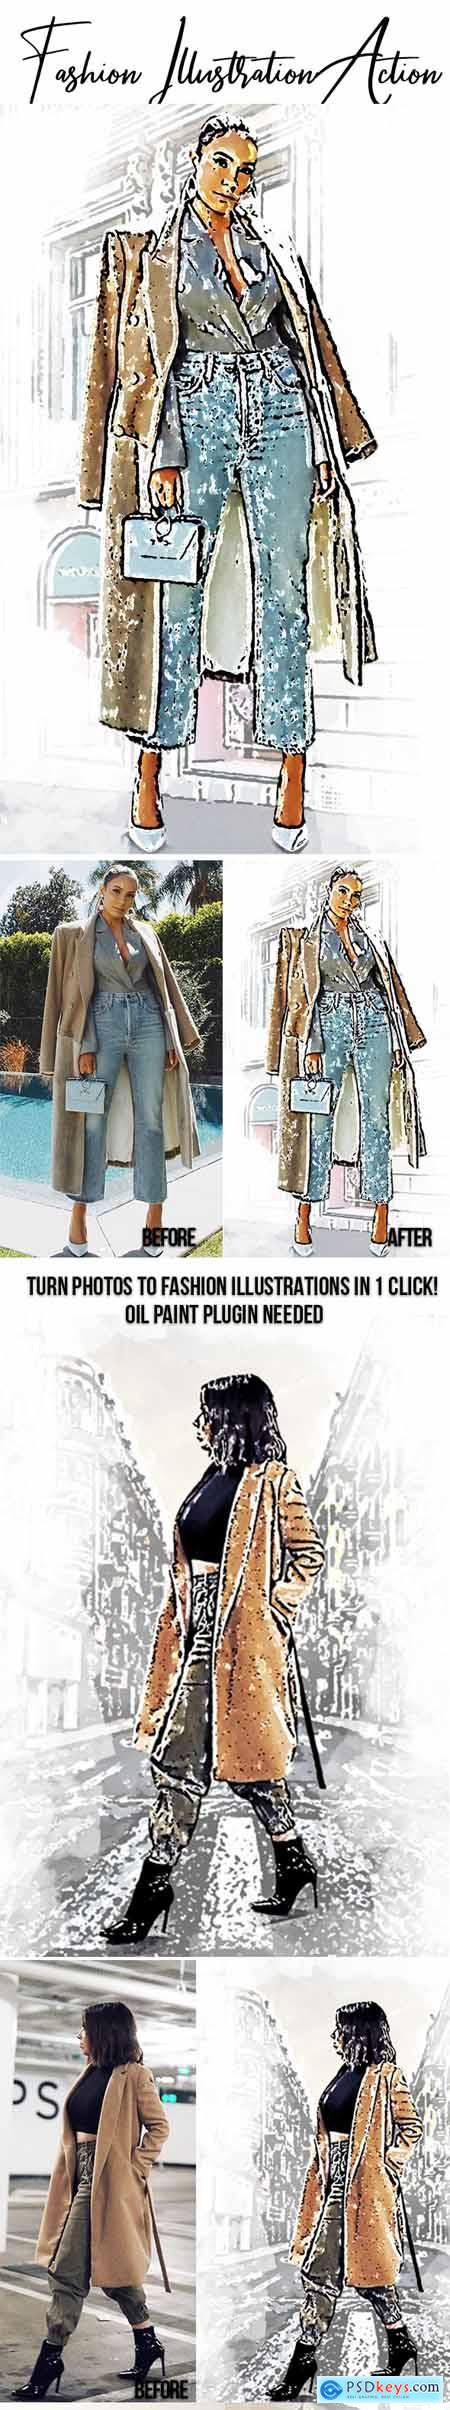 Fashion Illustration Effect